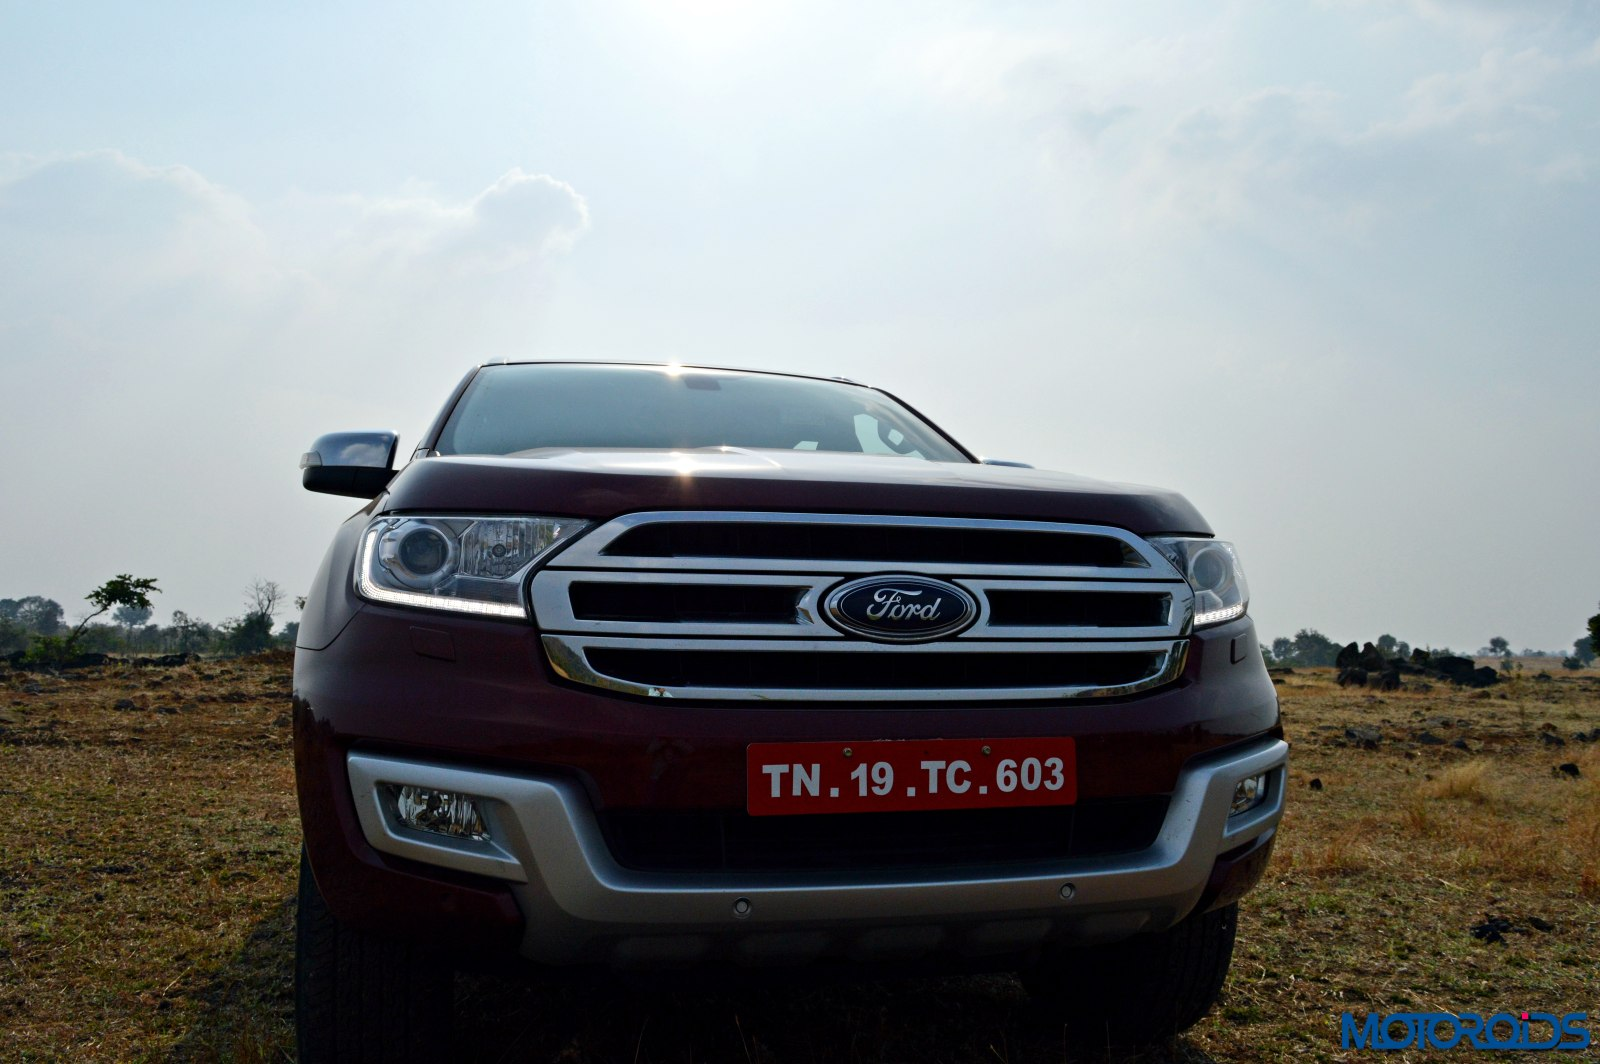 new 2016 Ford Endeavour india review (20)